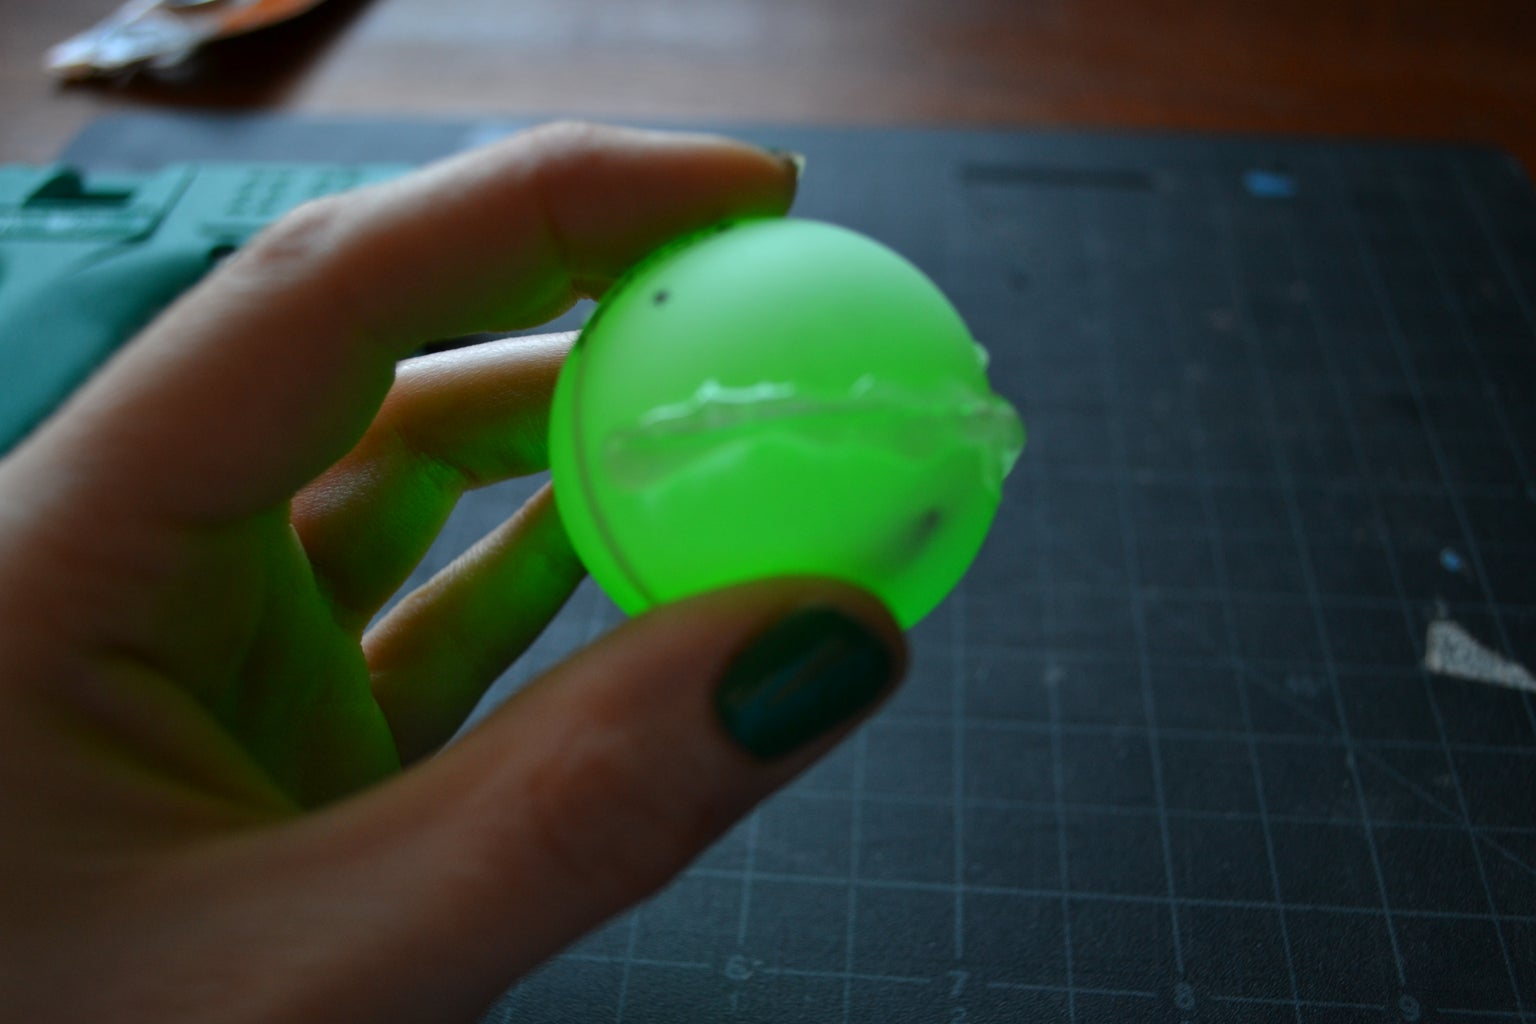 Glue the Ping Pong Ball Closed